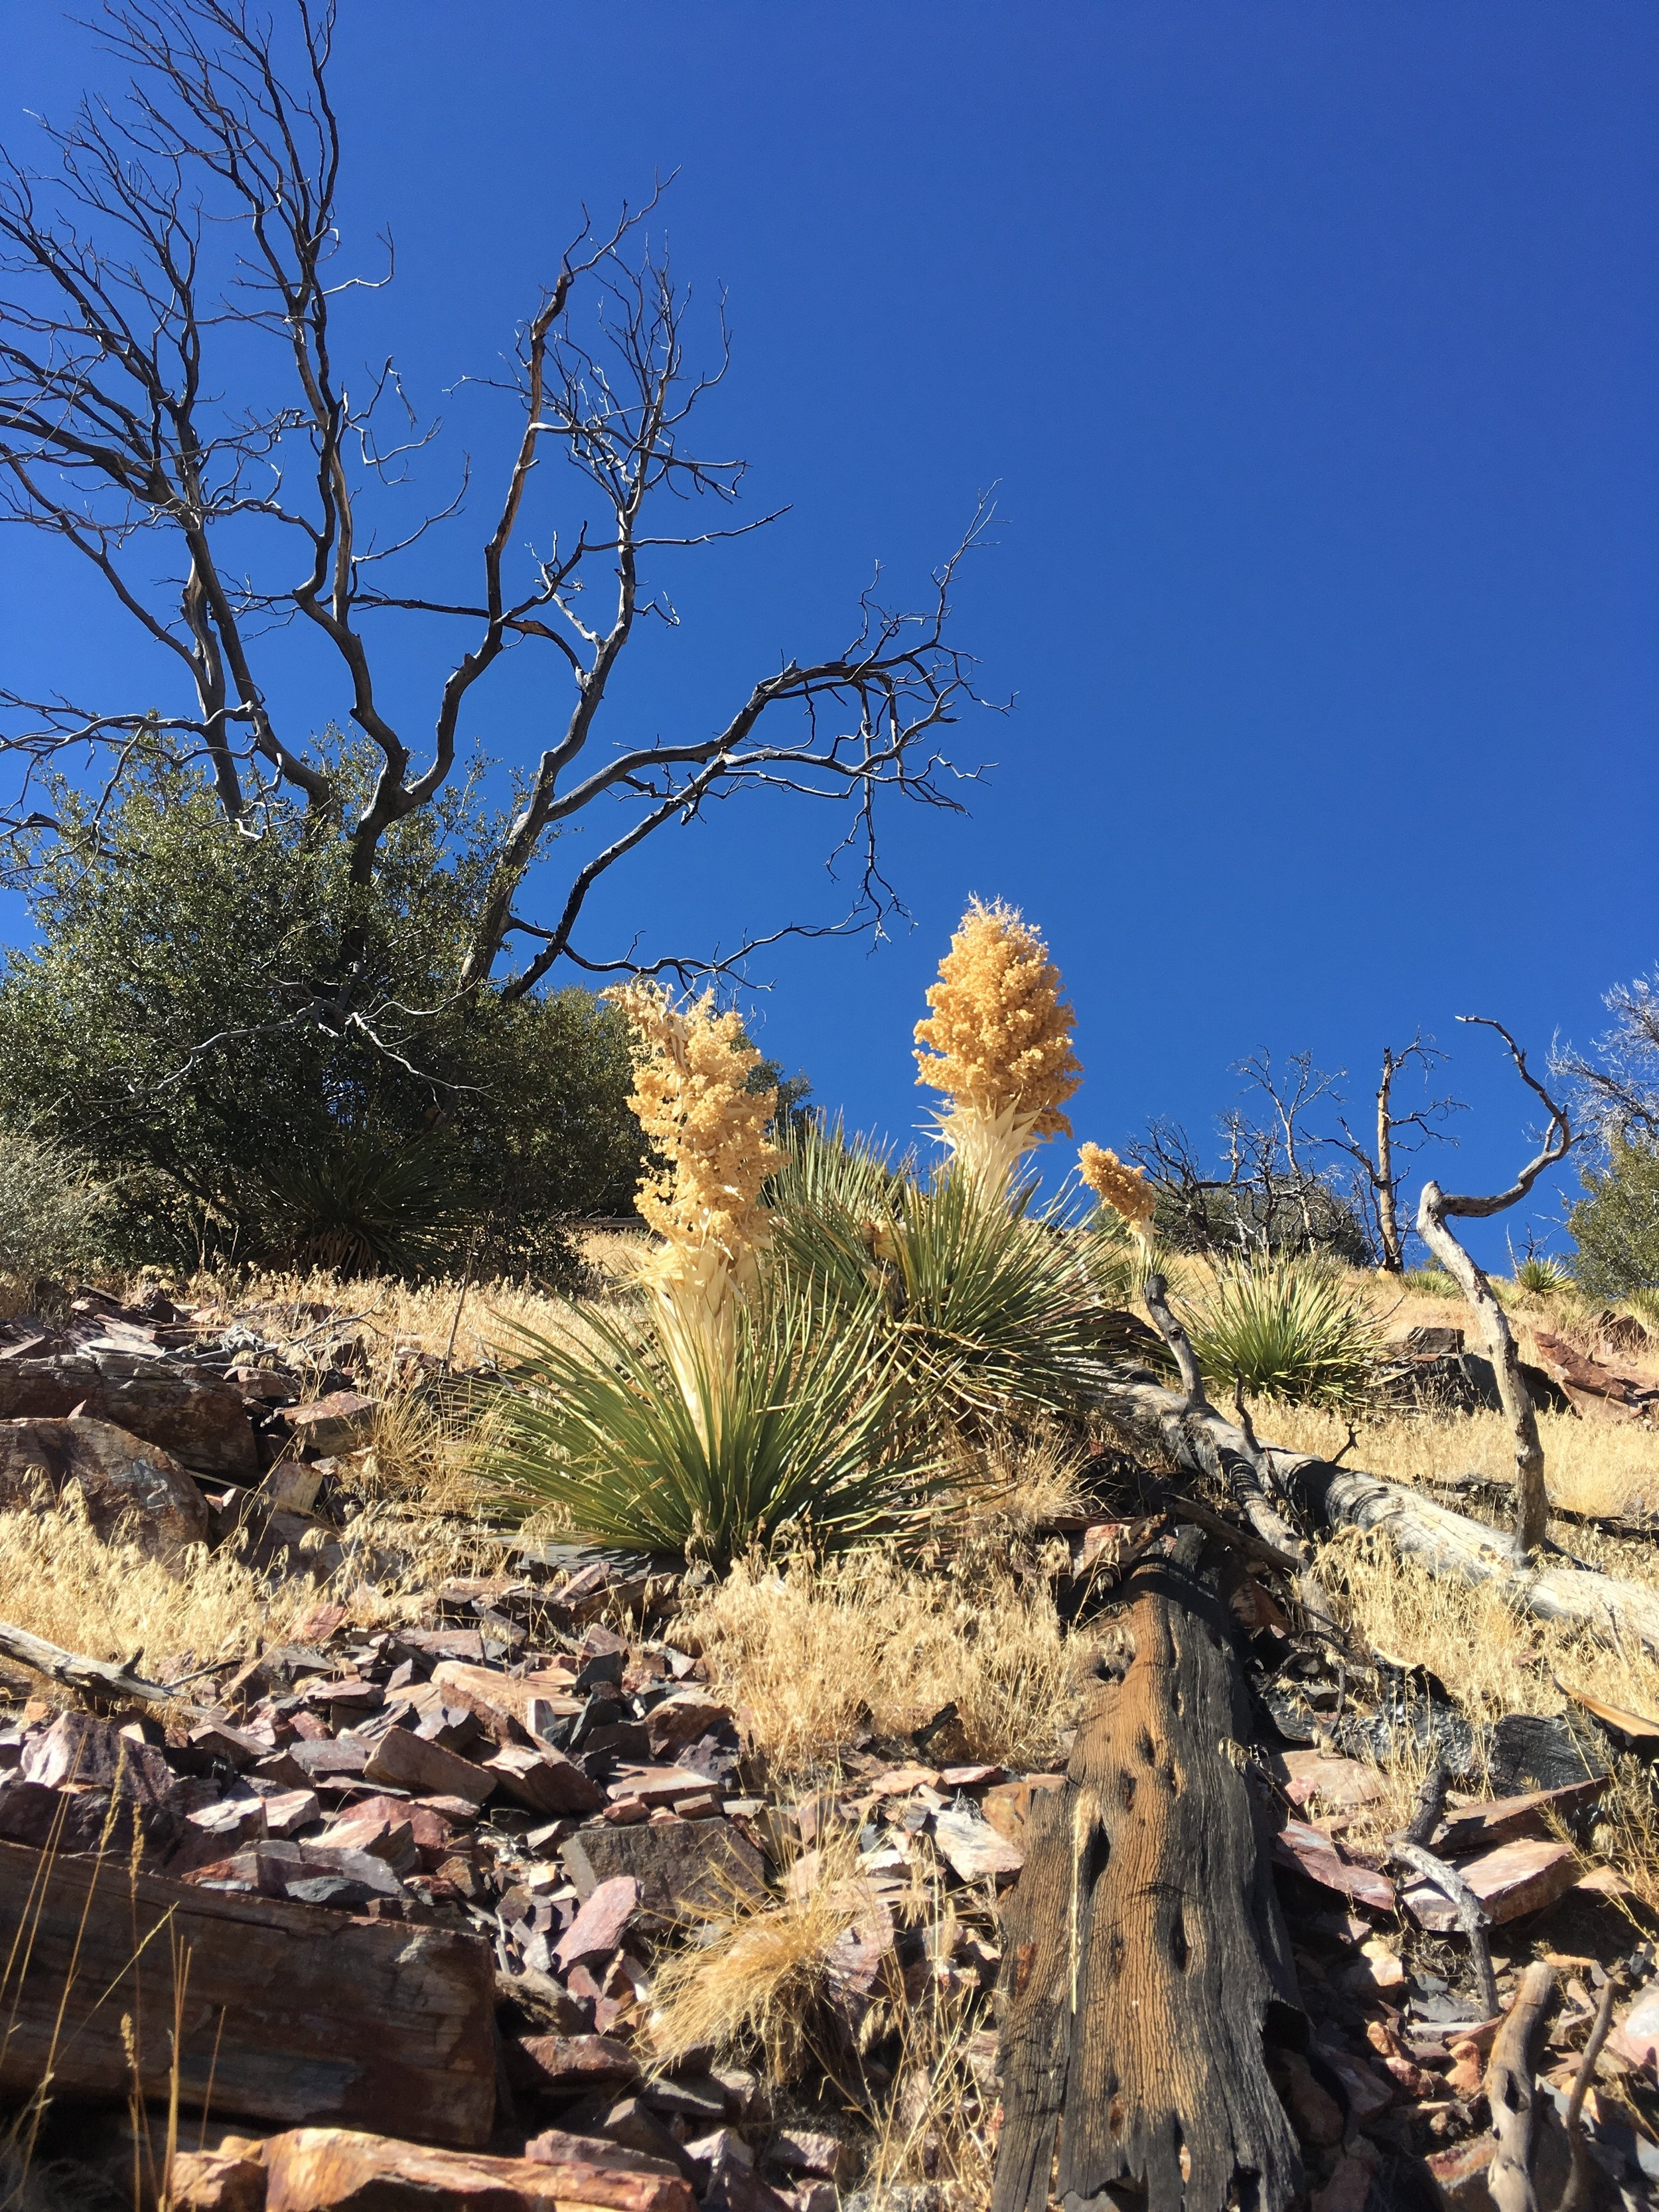 Yucca plants, the first we saw in the desert.